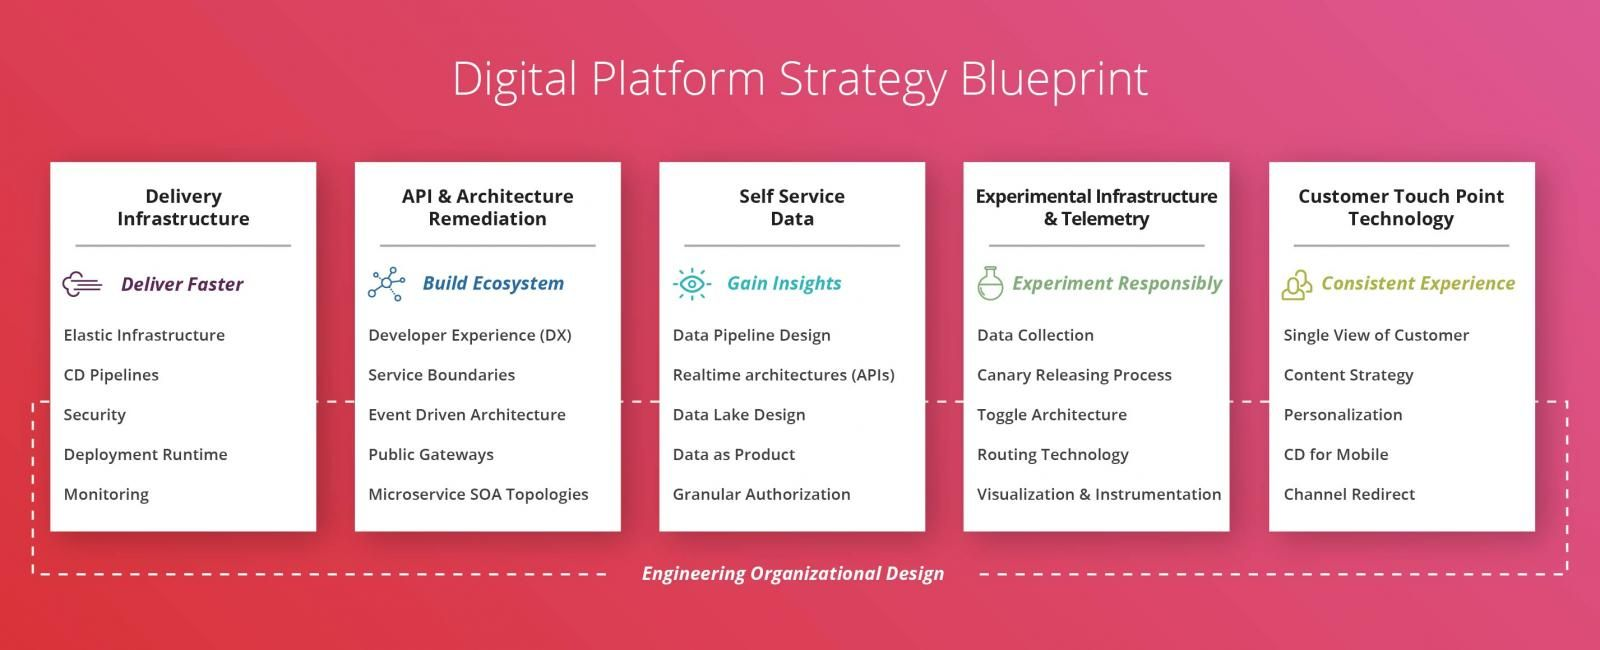 The art of platform thinking canvas pinterest digital platform strategy a blueprint malvernweather Image collections